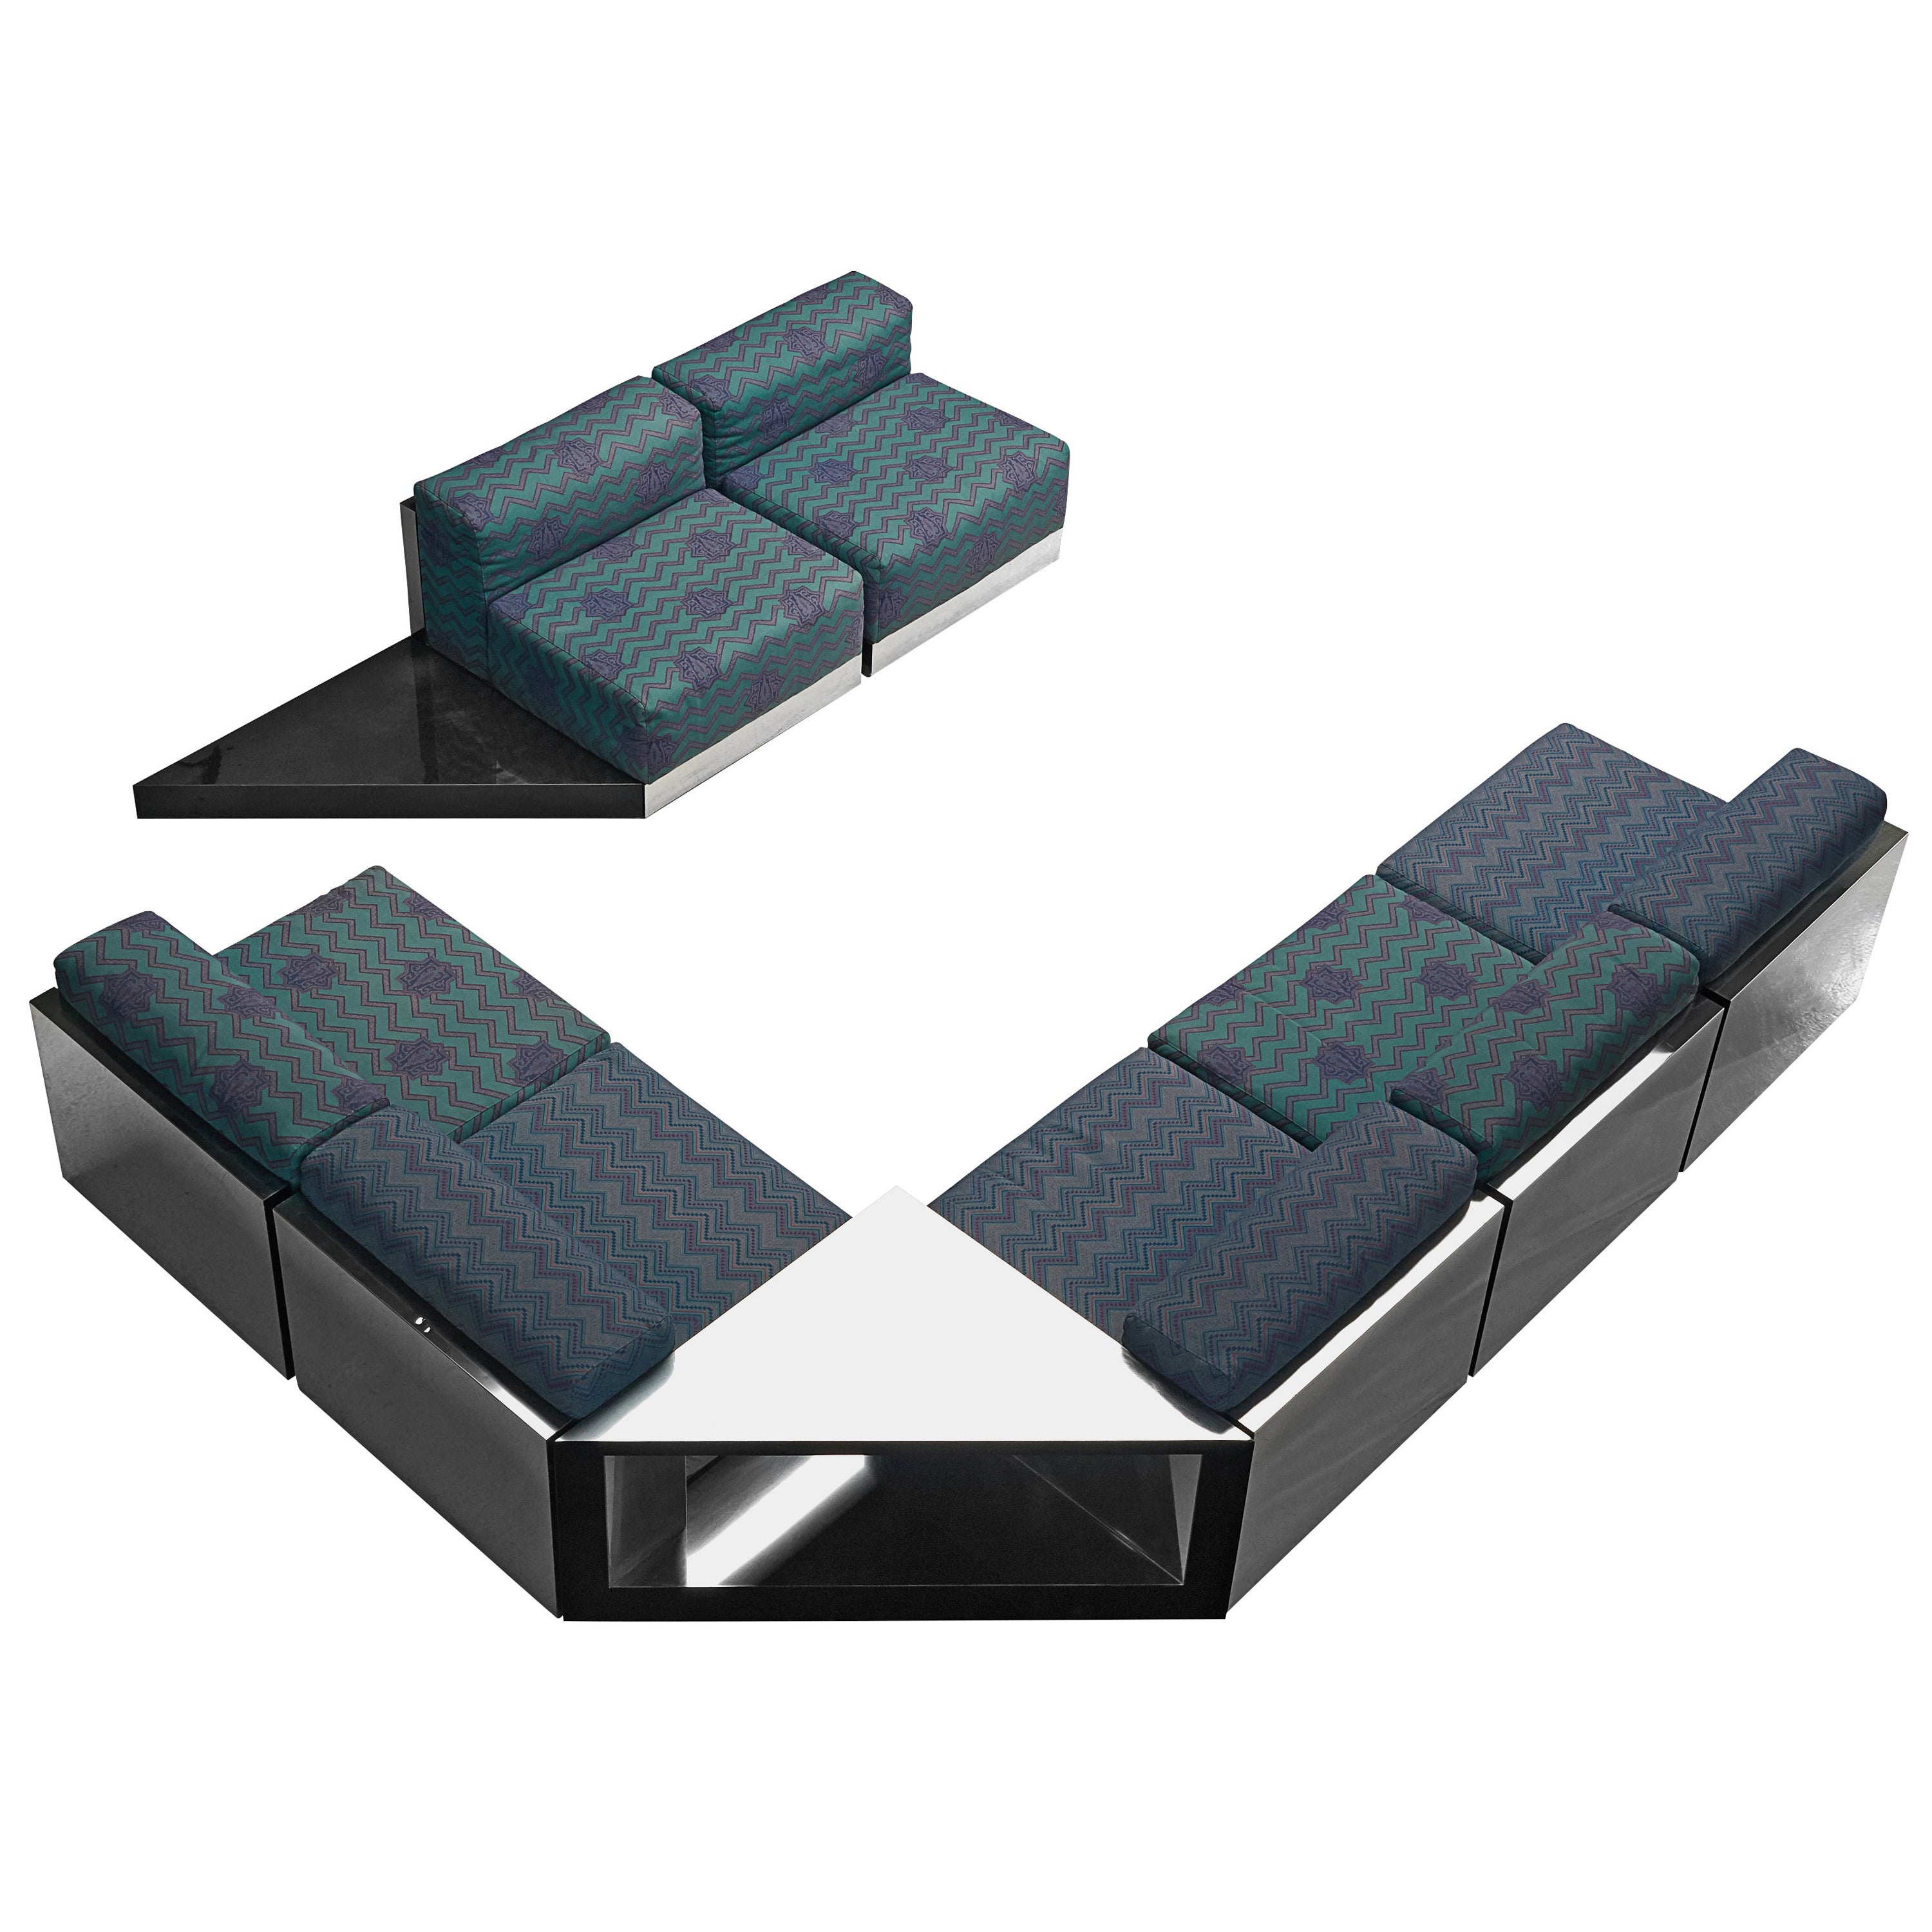 Italian Sectional Sofa in Steel and Patterned Upholstery, 1980s